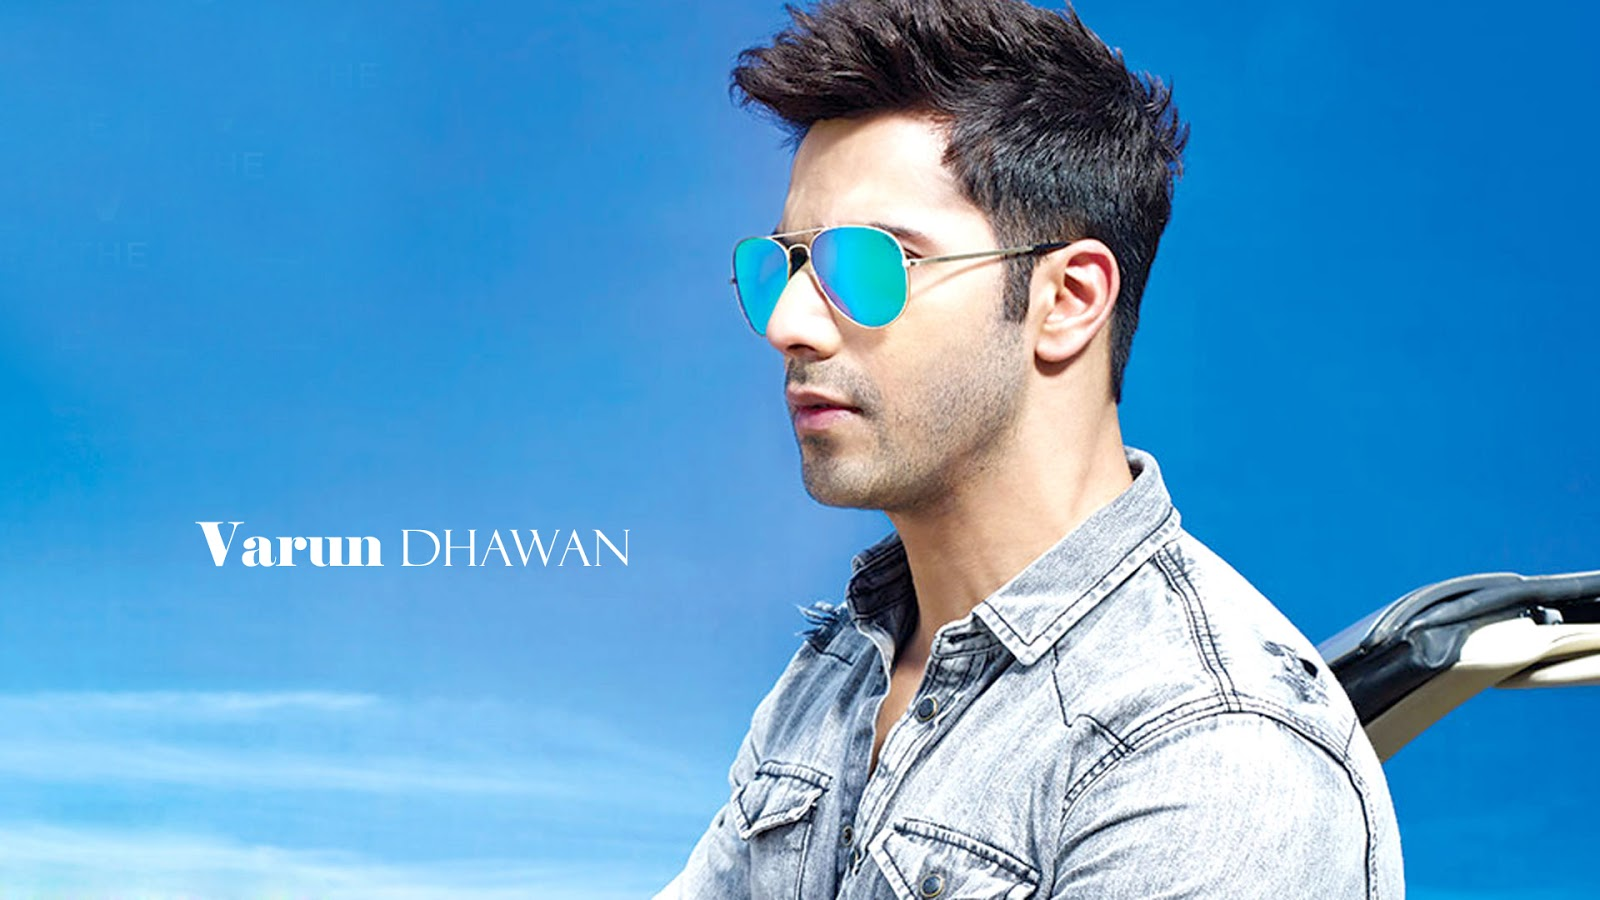 Varun Dhawan Hd Wallpaper Hindi Me Solution